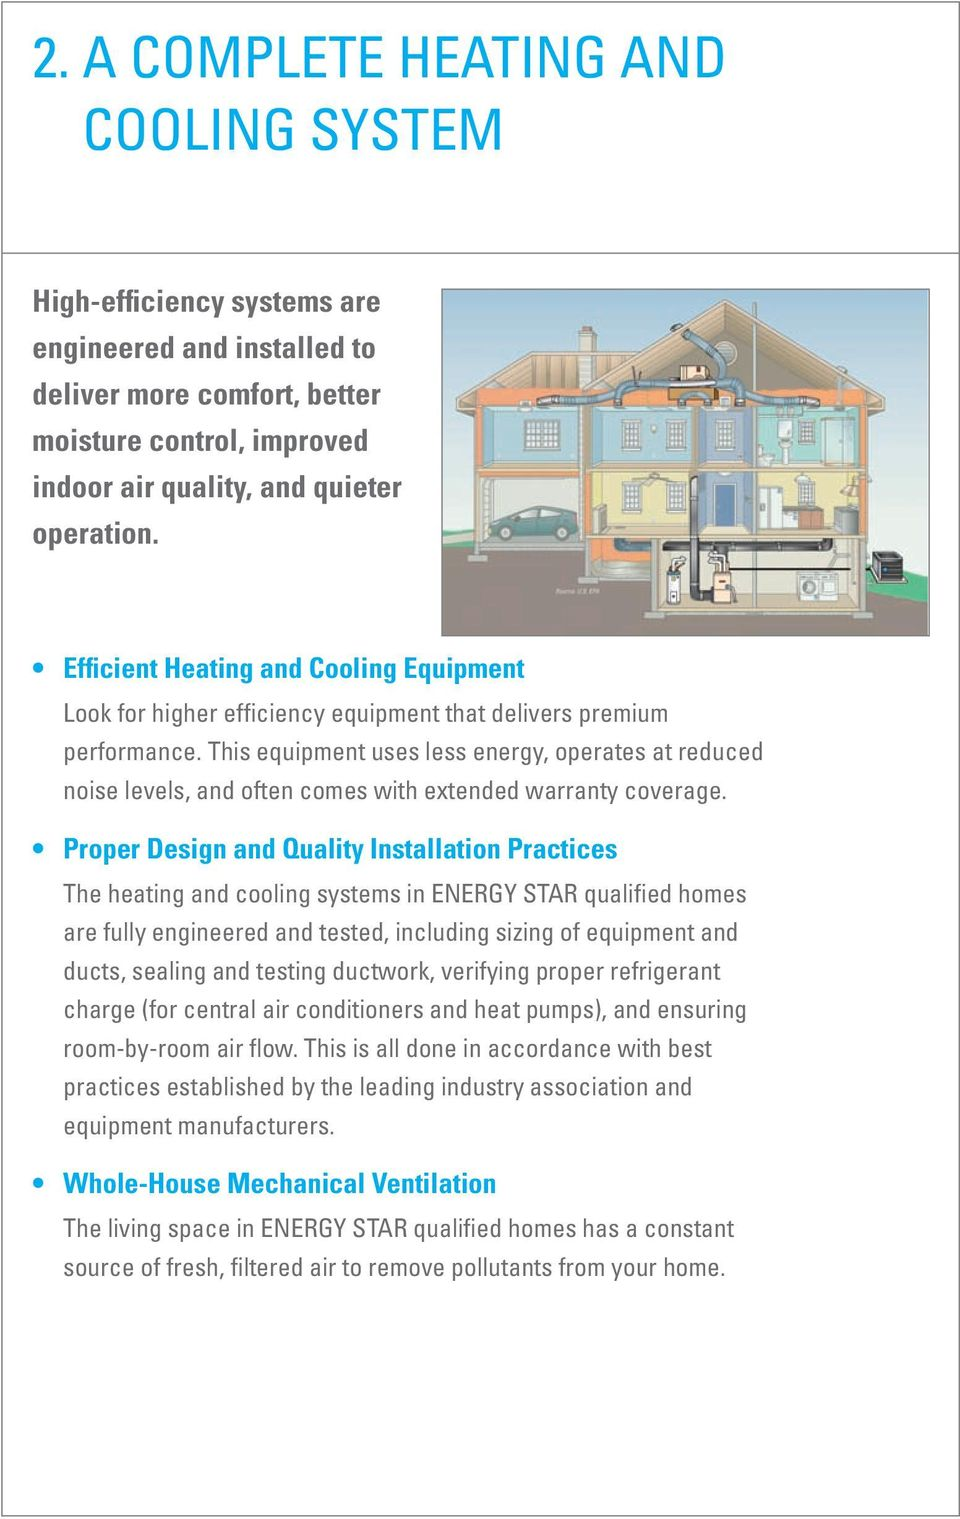 This equipment uses less energy, operates at reduced noise levels, and often comes with extended warranty coverage.